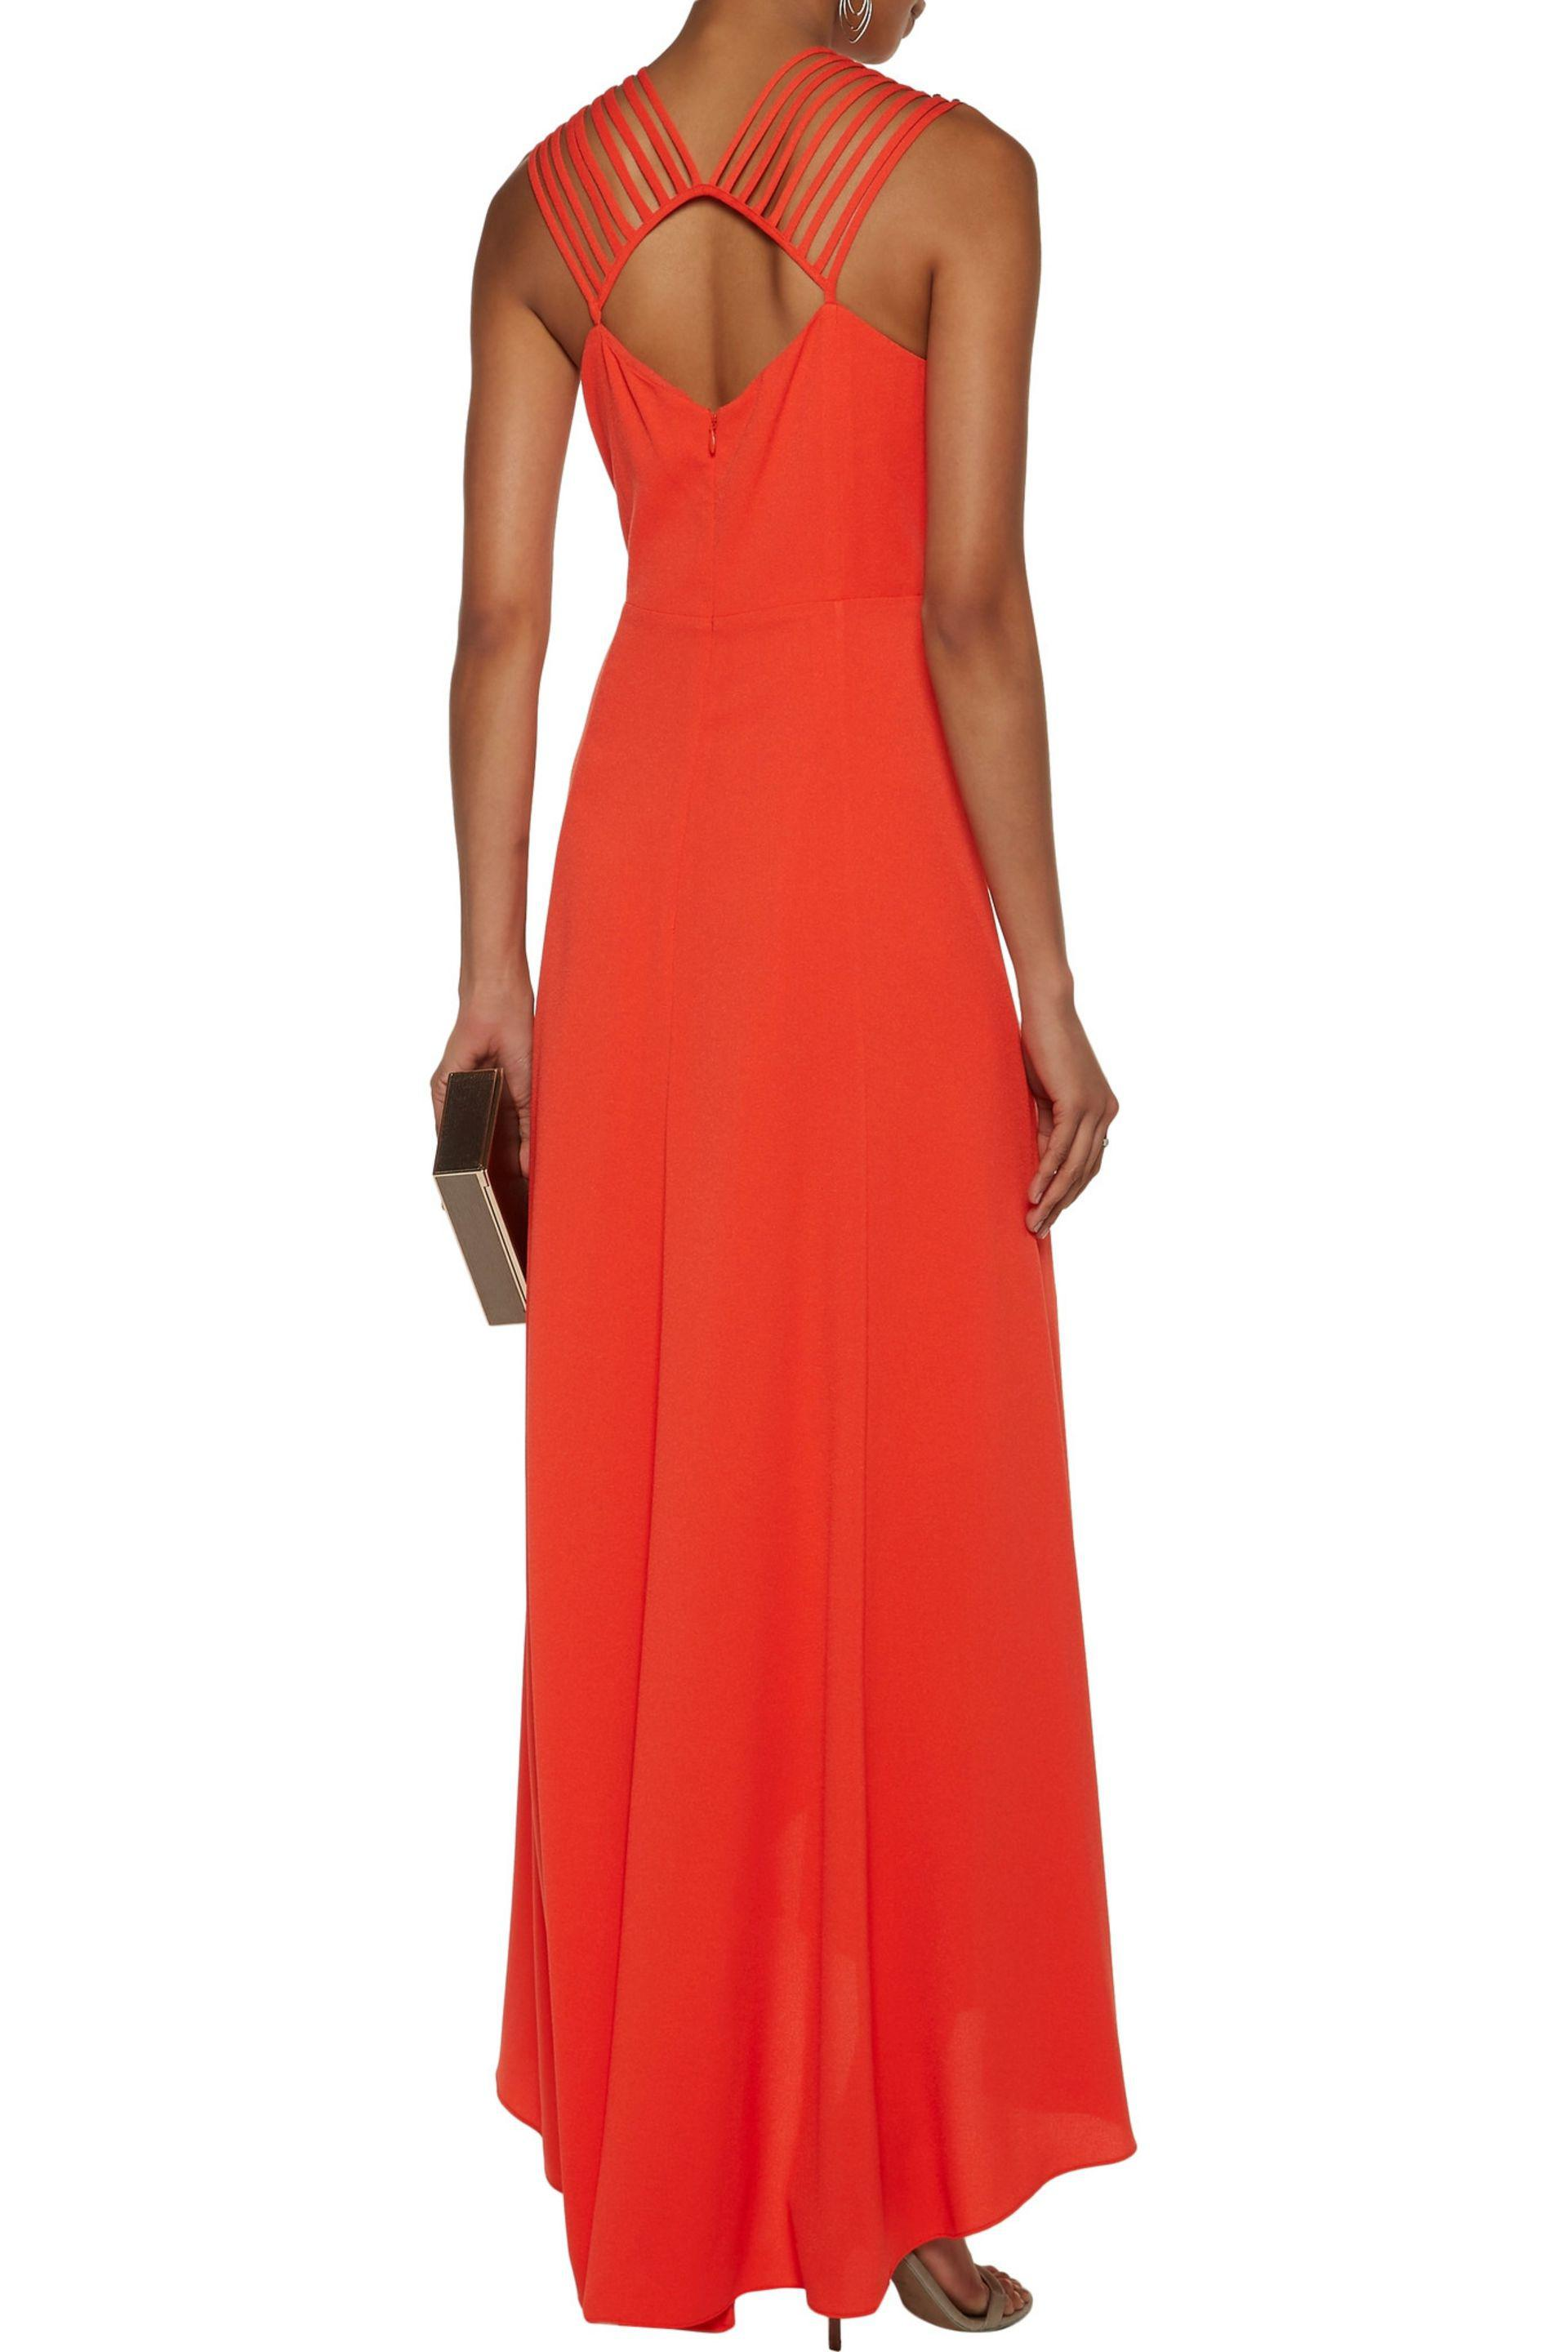 Halston Heritage | Asymmetric Embellished Crepe Gown Bright Orange | Lyst.  View Fullscreen